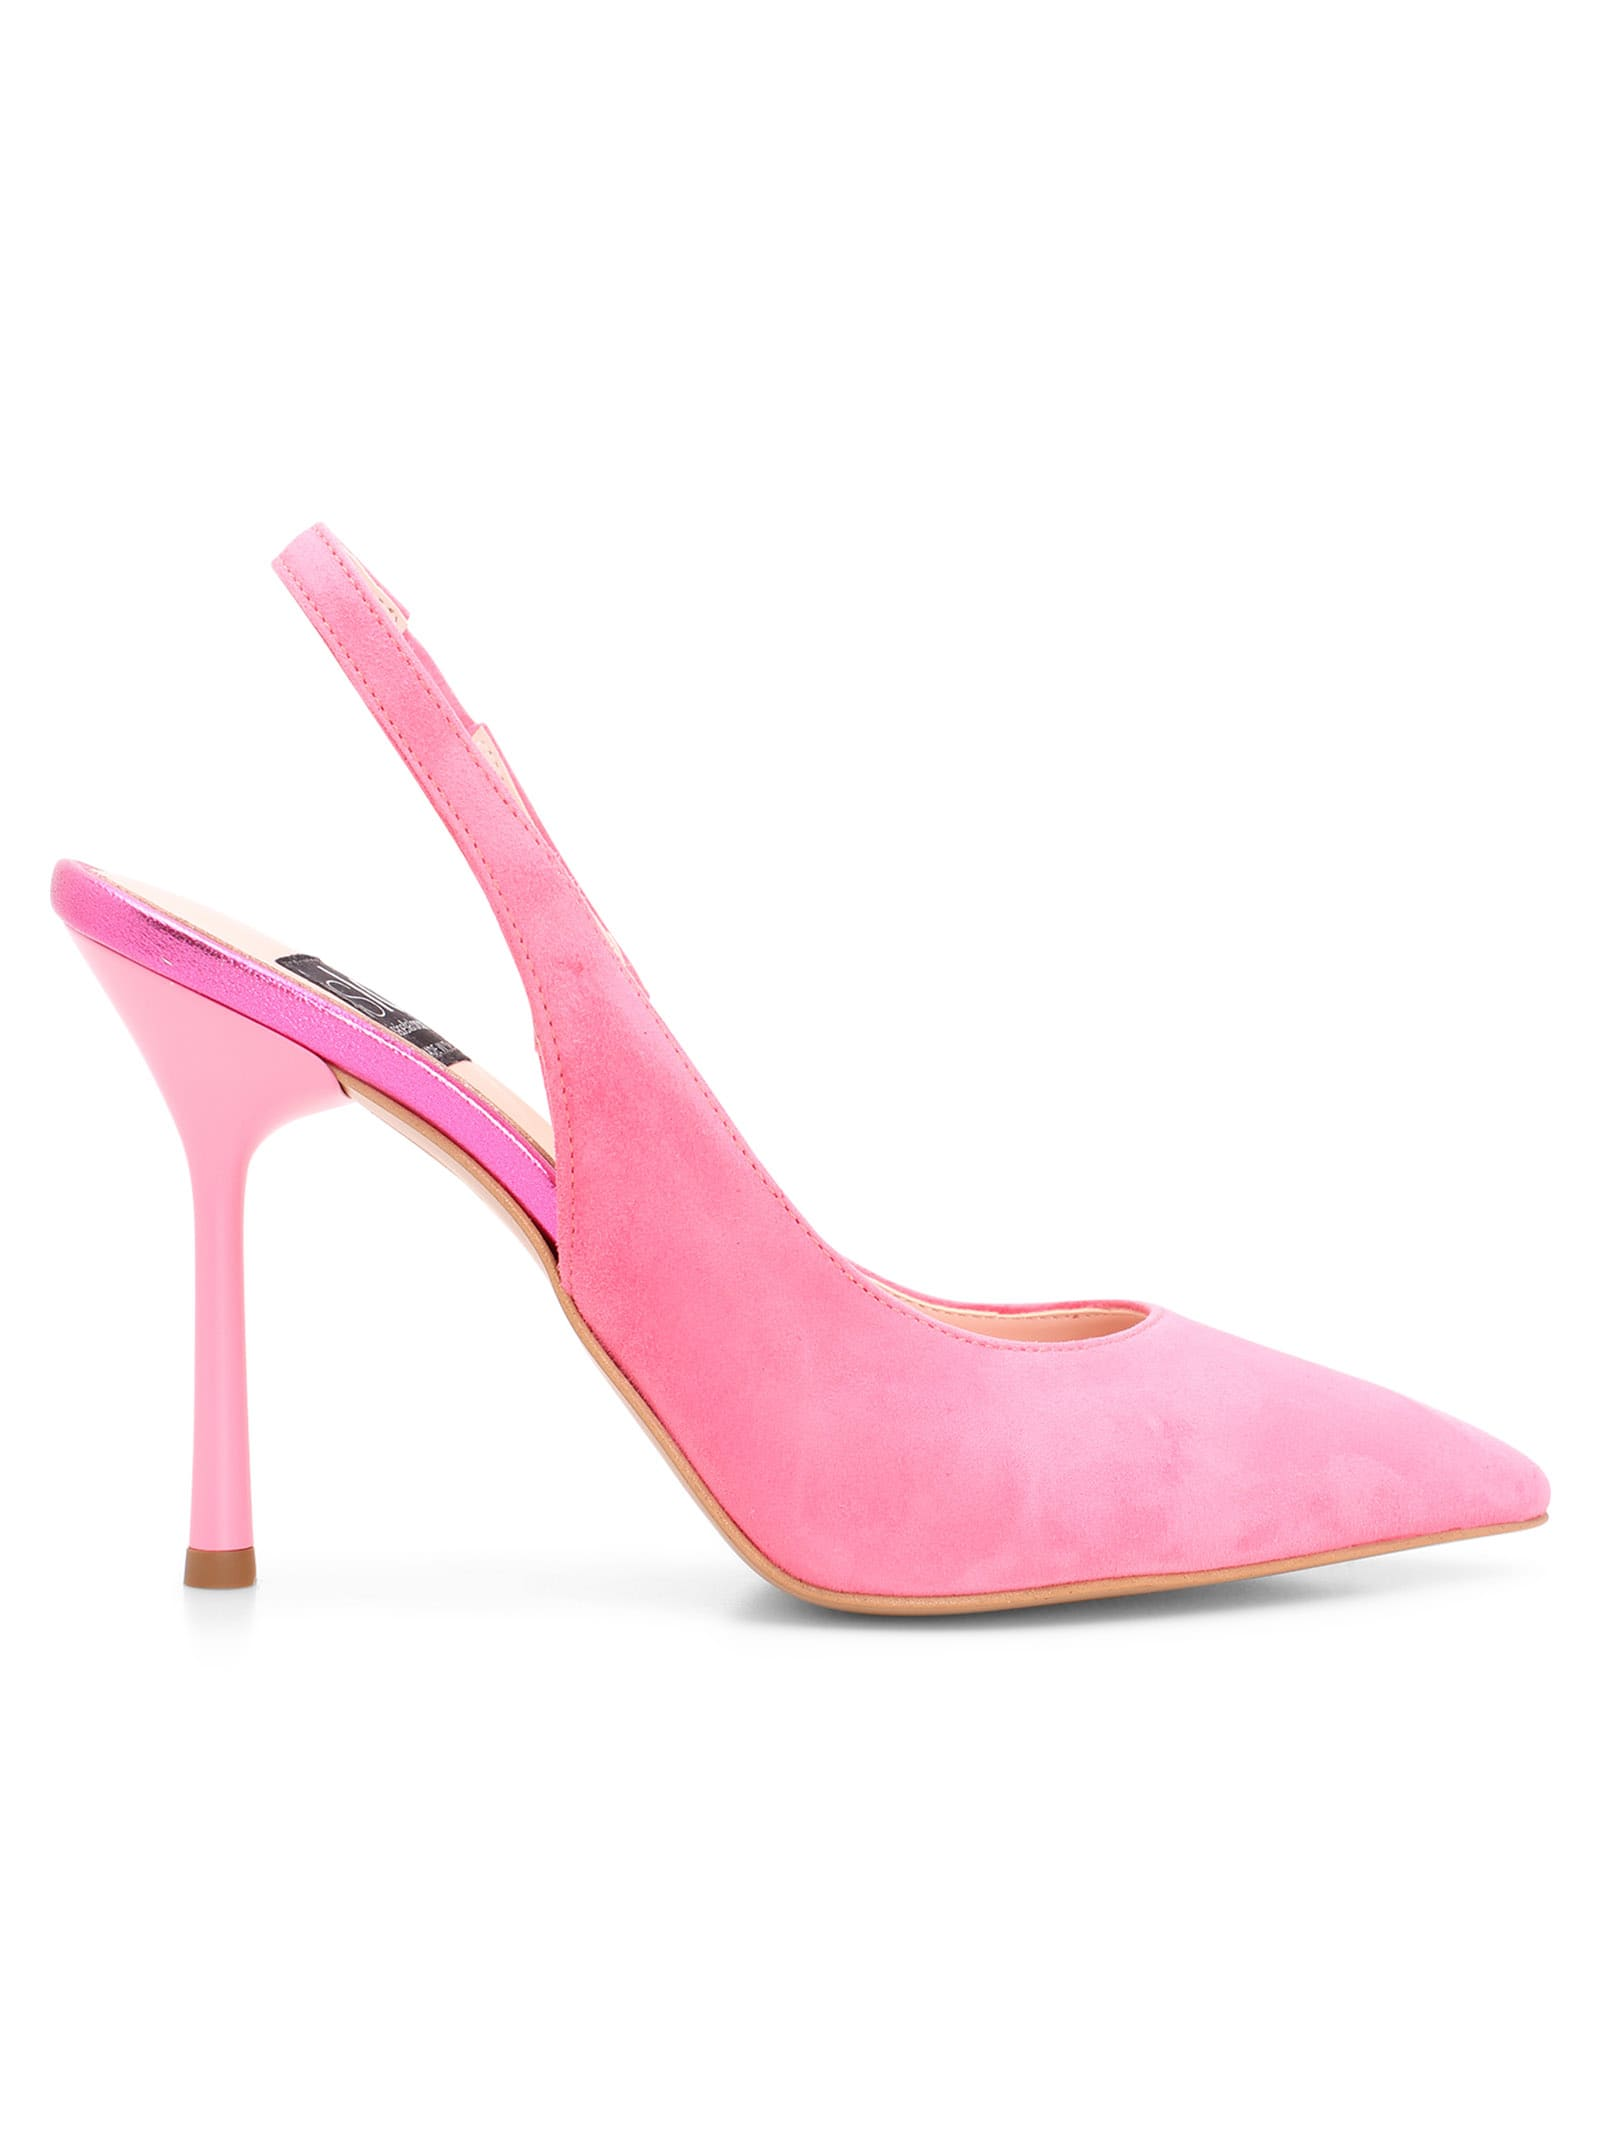 gang Leather Pumps